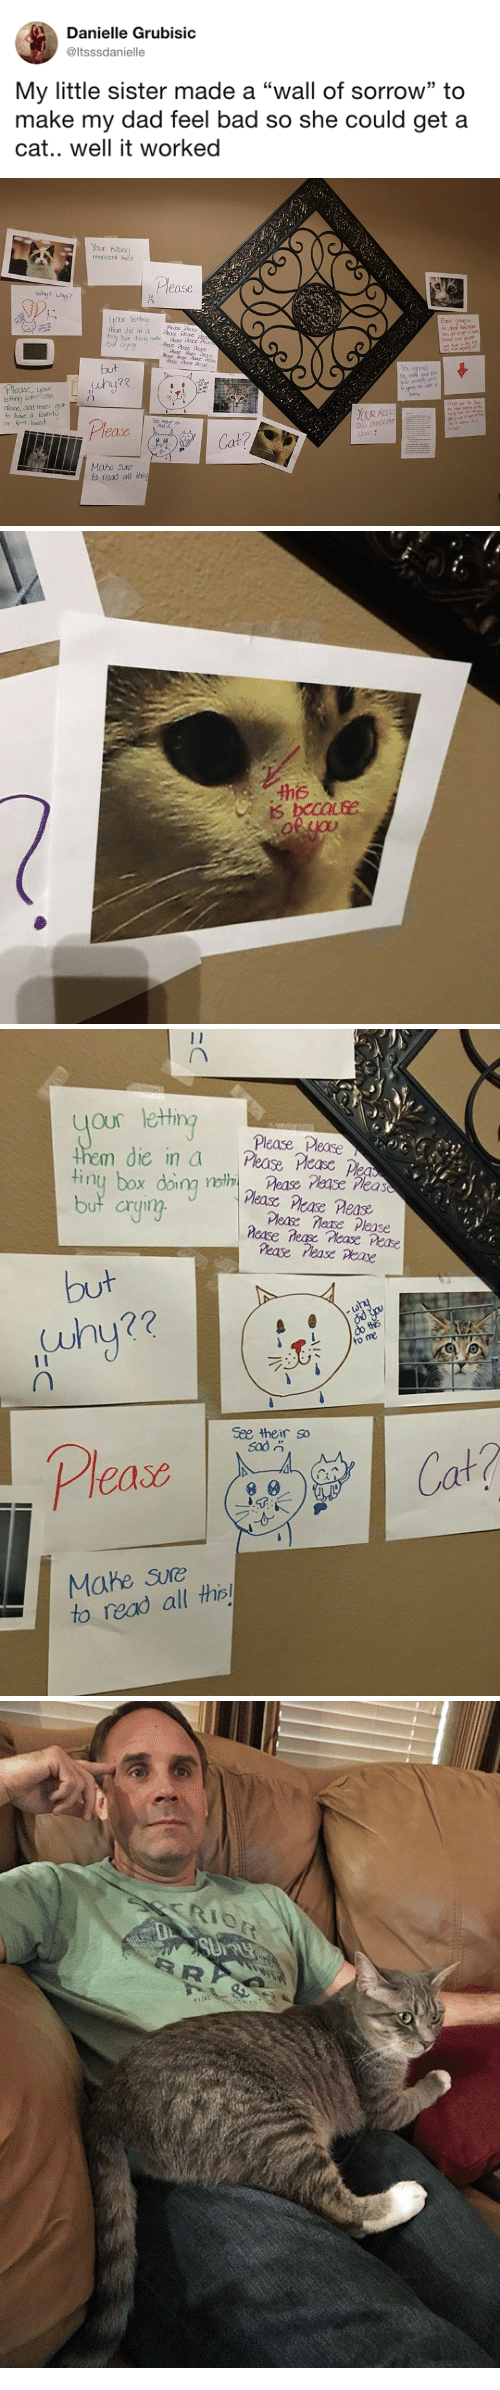 "Bad, Dad, and Family: Danielle Grubisic  @ltsssdanielle  My little sister made a ""wall of sorrow"" to  make my dad feel bad so she could get a  cat.. well it worked  35   Your Pillina  ininocent Ines  uhy why?  ease  yor i  Phase Por  but  Please, yous  nu nofe and naa  alore, and hver got  to haxe a family  or feni loved  re  ease !  ING INNOCa  LIVES  Cat?  Mahe Se  to read all廾is   Our lethit  them die in a Pease Ple  tiny box doin nth' Pease Pease,neas  but aryintg  Please Please  Peas ease Mease  Mease Nerse Please  Rease Reasc Pease Pease  Pease  e Pease  but  (uhy??  to me  See their so  Cat?  Mahe Sure  to read all ths"